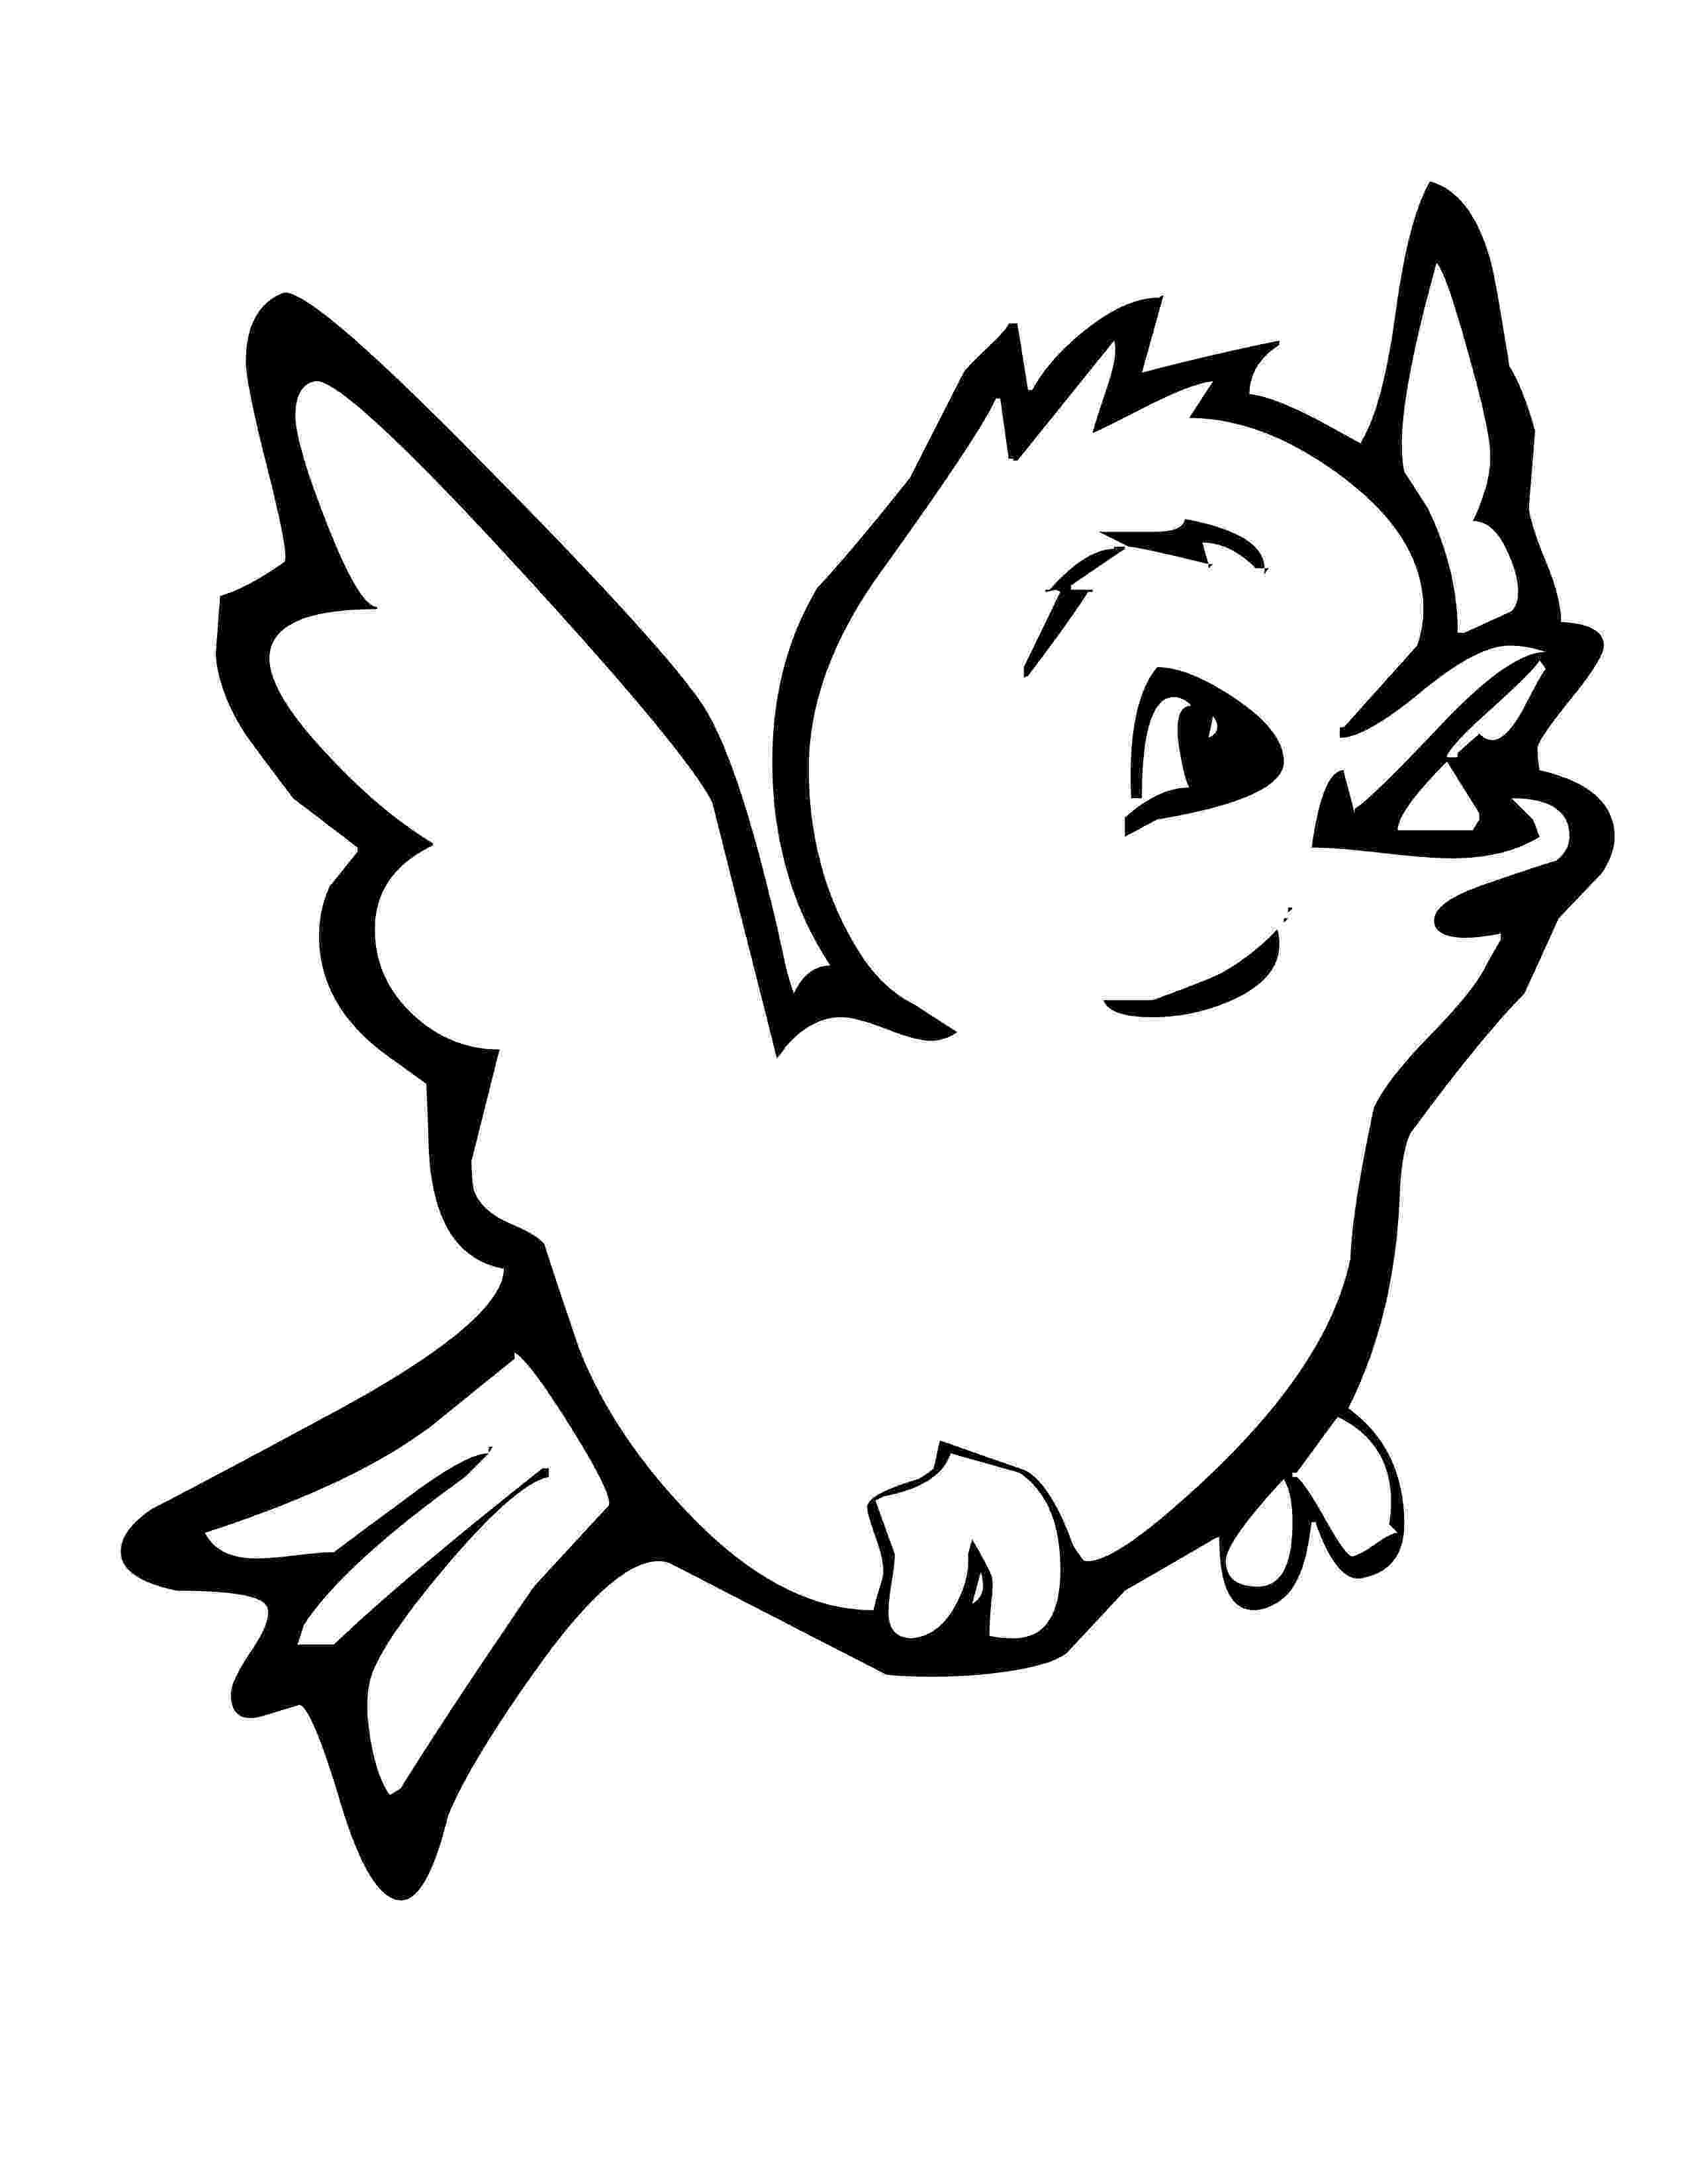 birds to color bird coloring pages to birds color 1 1